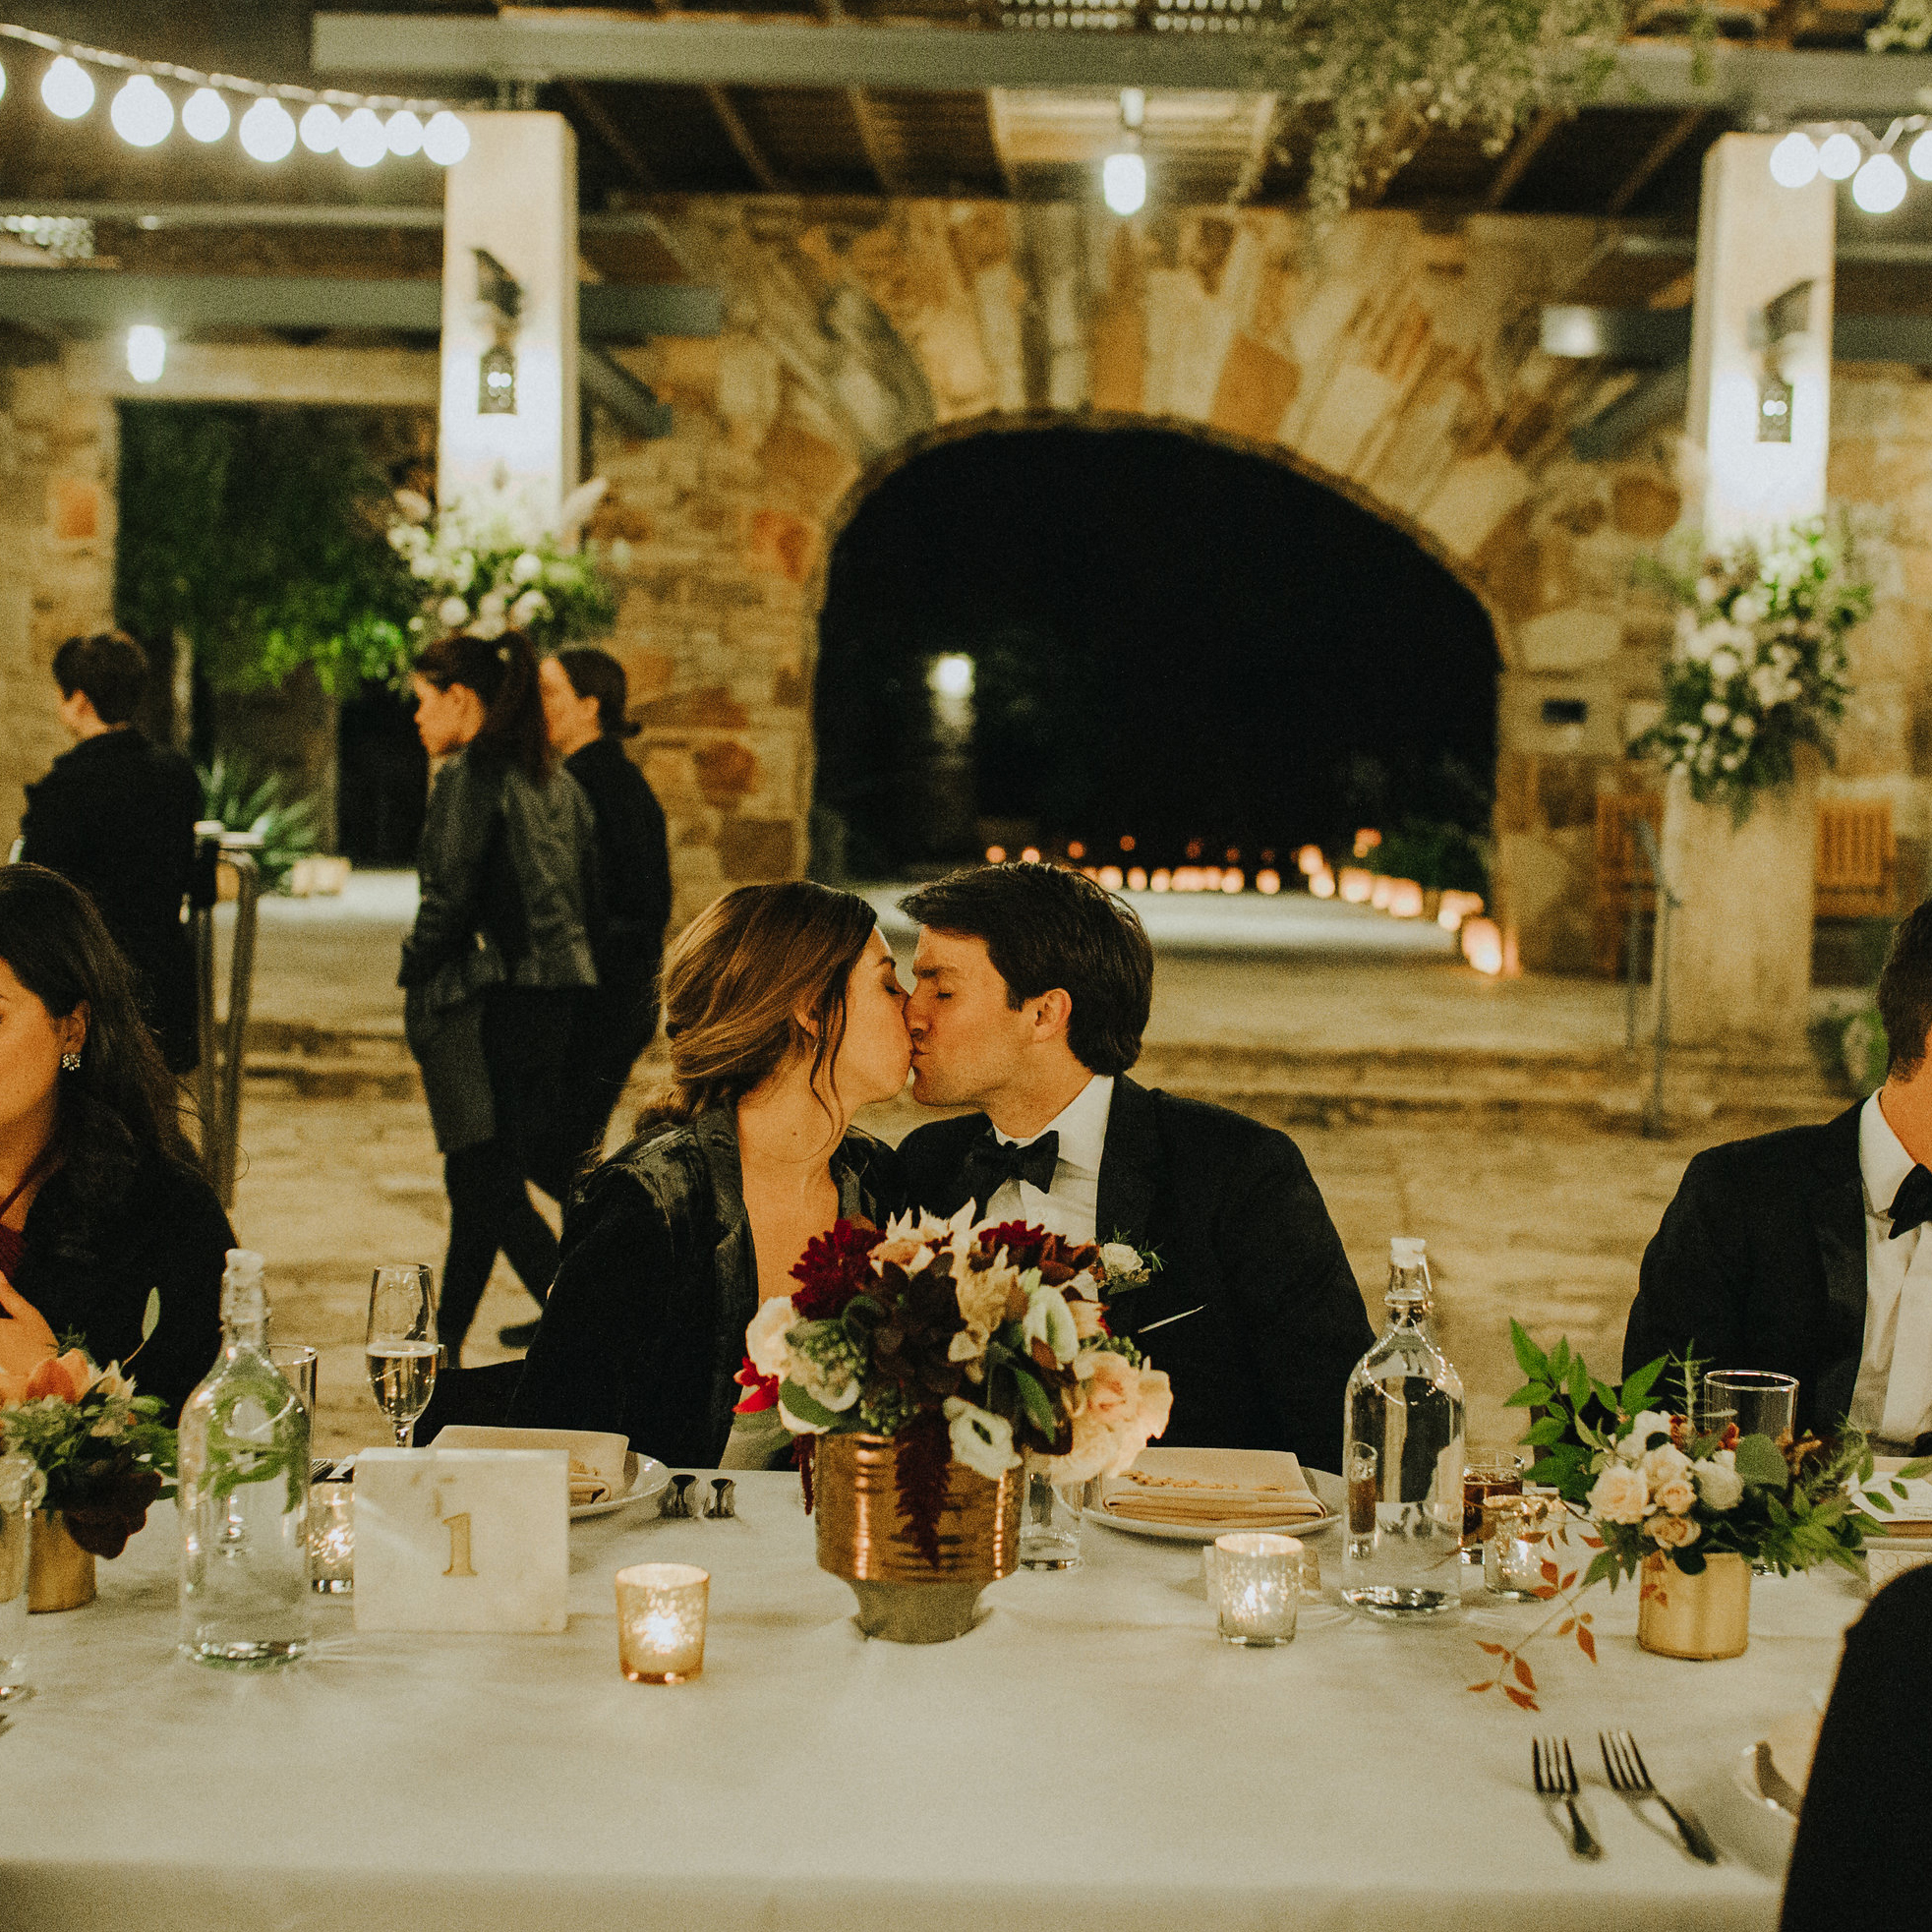 Bride and Groom kissing at wedding table